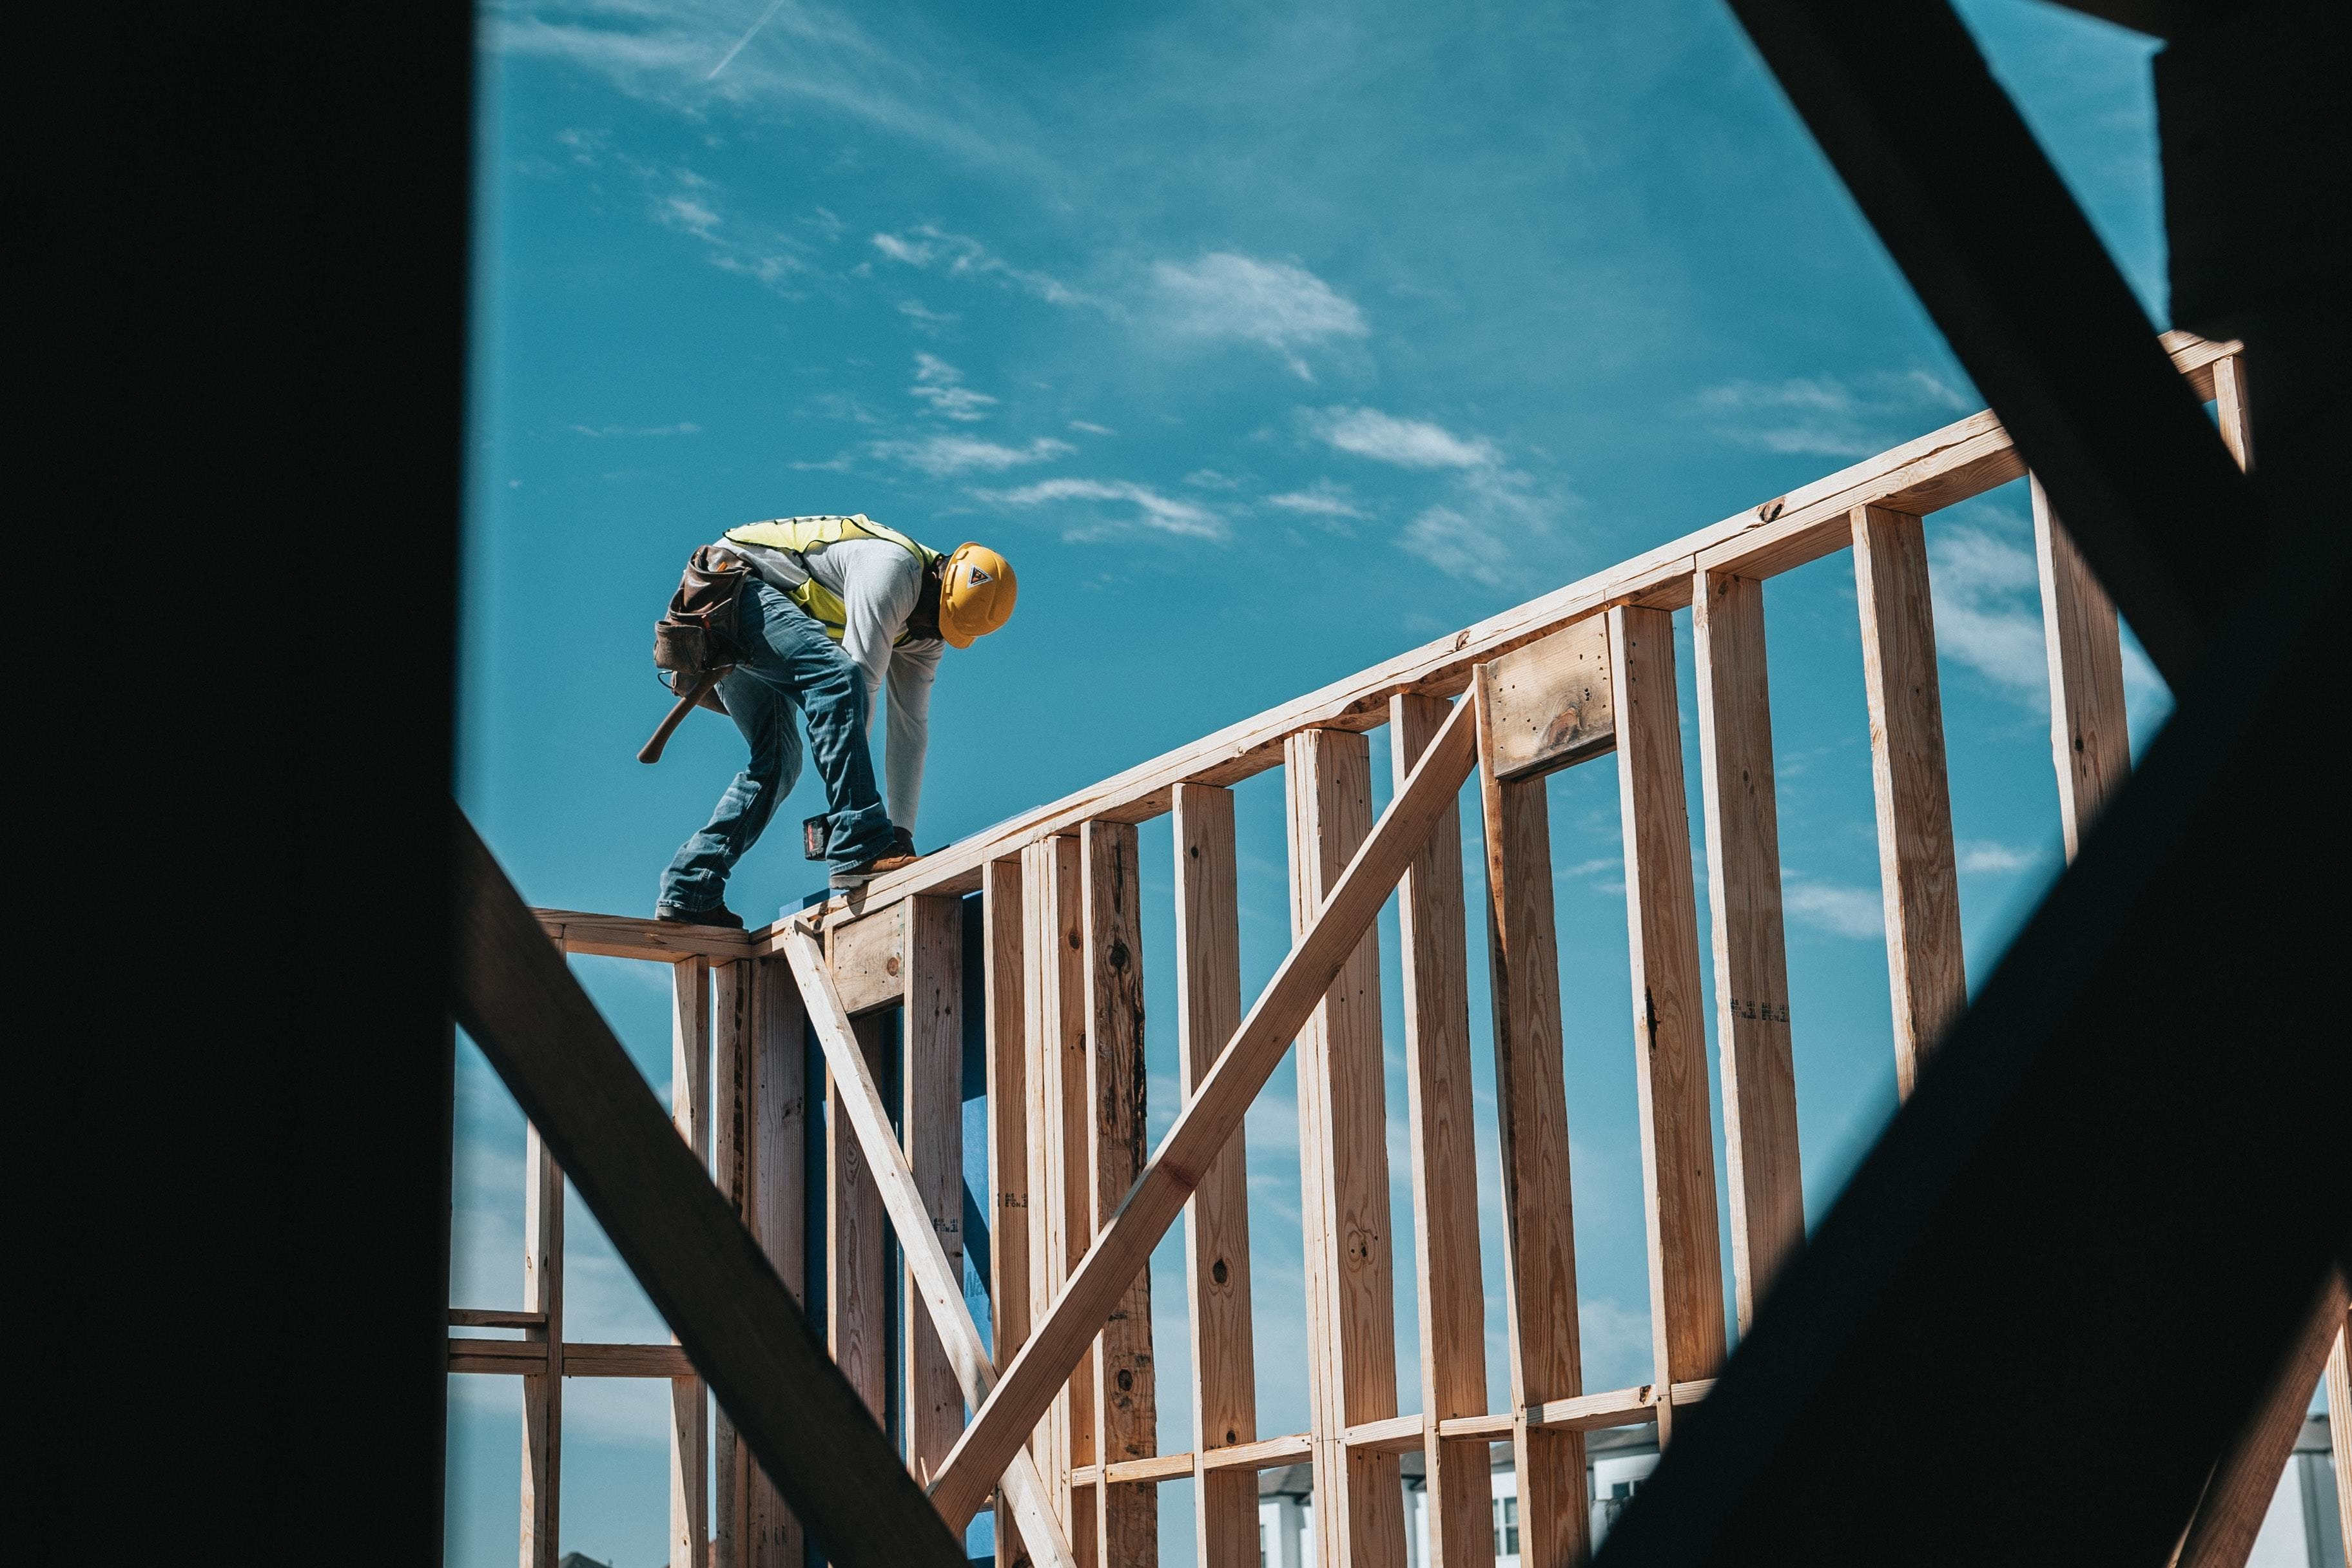 physically demanding jobs, such as this man constructing a building, could potentially lead to problems such as kidney disease